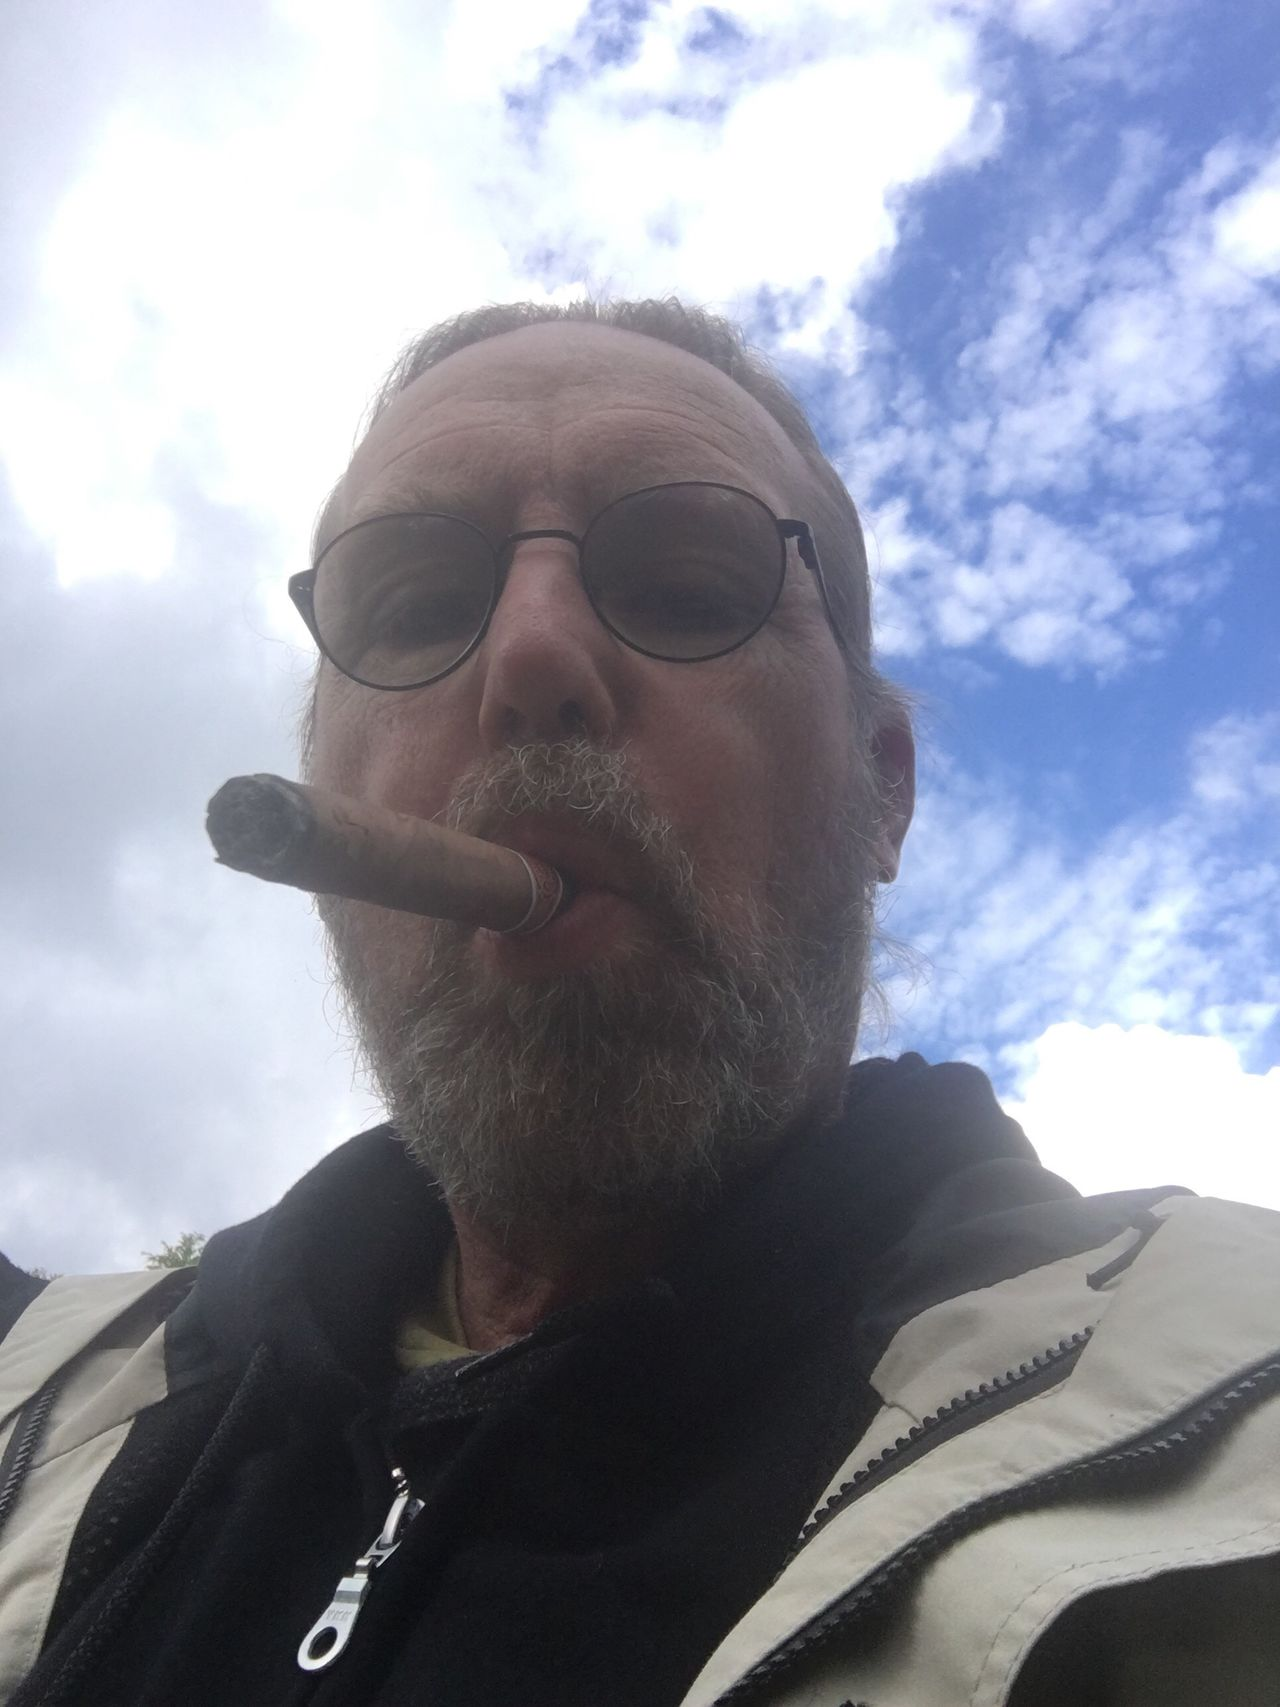 Having a cuban cigar as my vacation comes to a close. Vacations Romeo Y Julieta Front View Leisure Activity Low Angle View Sky Lifestyles Headshot Cloud Cloud - Sky Sunny Sweden My Photography Me EyeEmBestPics EyeEm Best Shots Looking At Camera Focus On Foreground Person One Mid Adult Man Only Outdoors Adventure Day Person